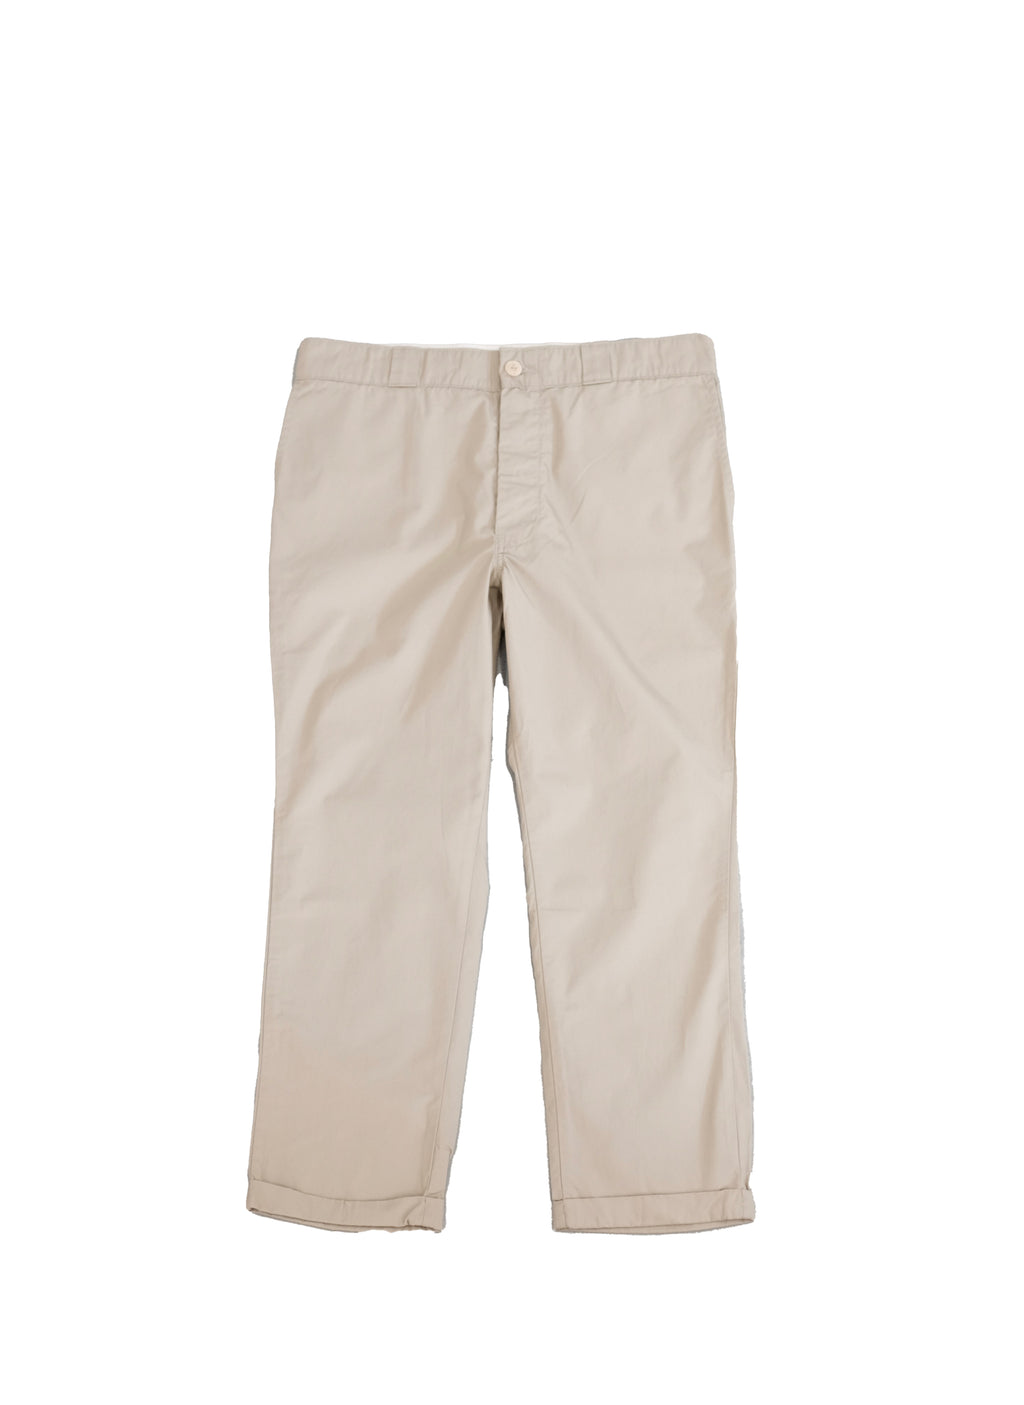 "<span style=""color: #ff2a00;"">Last One</span> PALMER TRADING COMPANY FOR DICKIES / LOWRIDE CHINO"